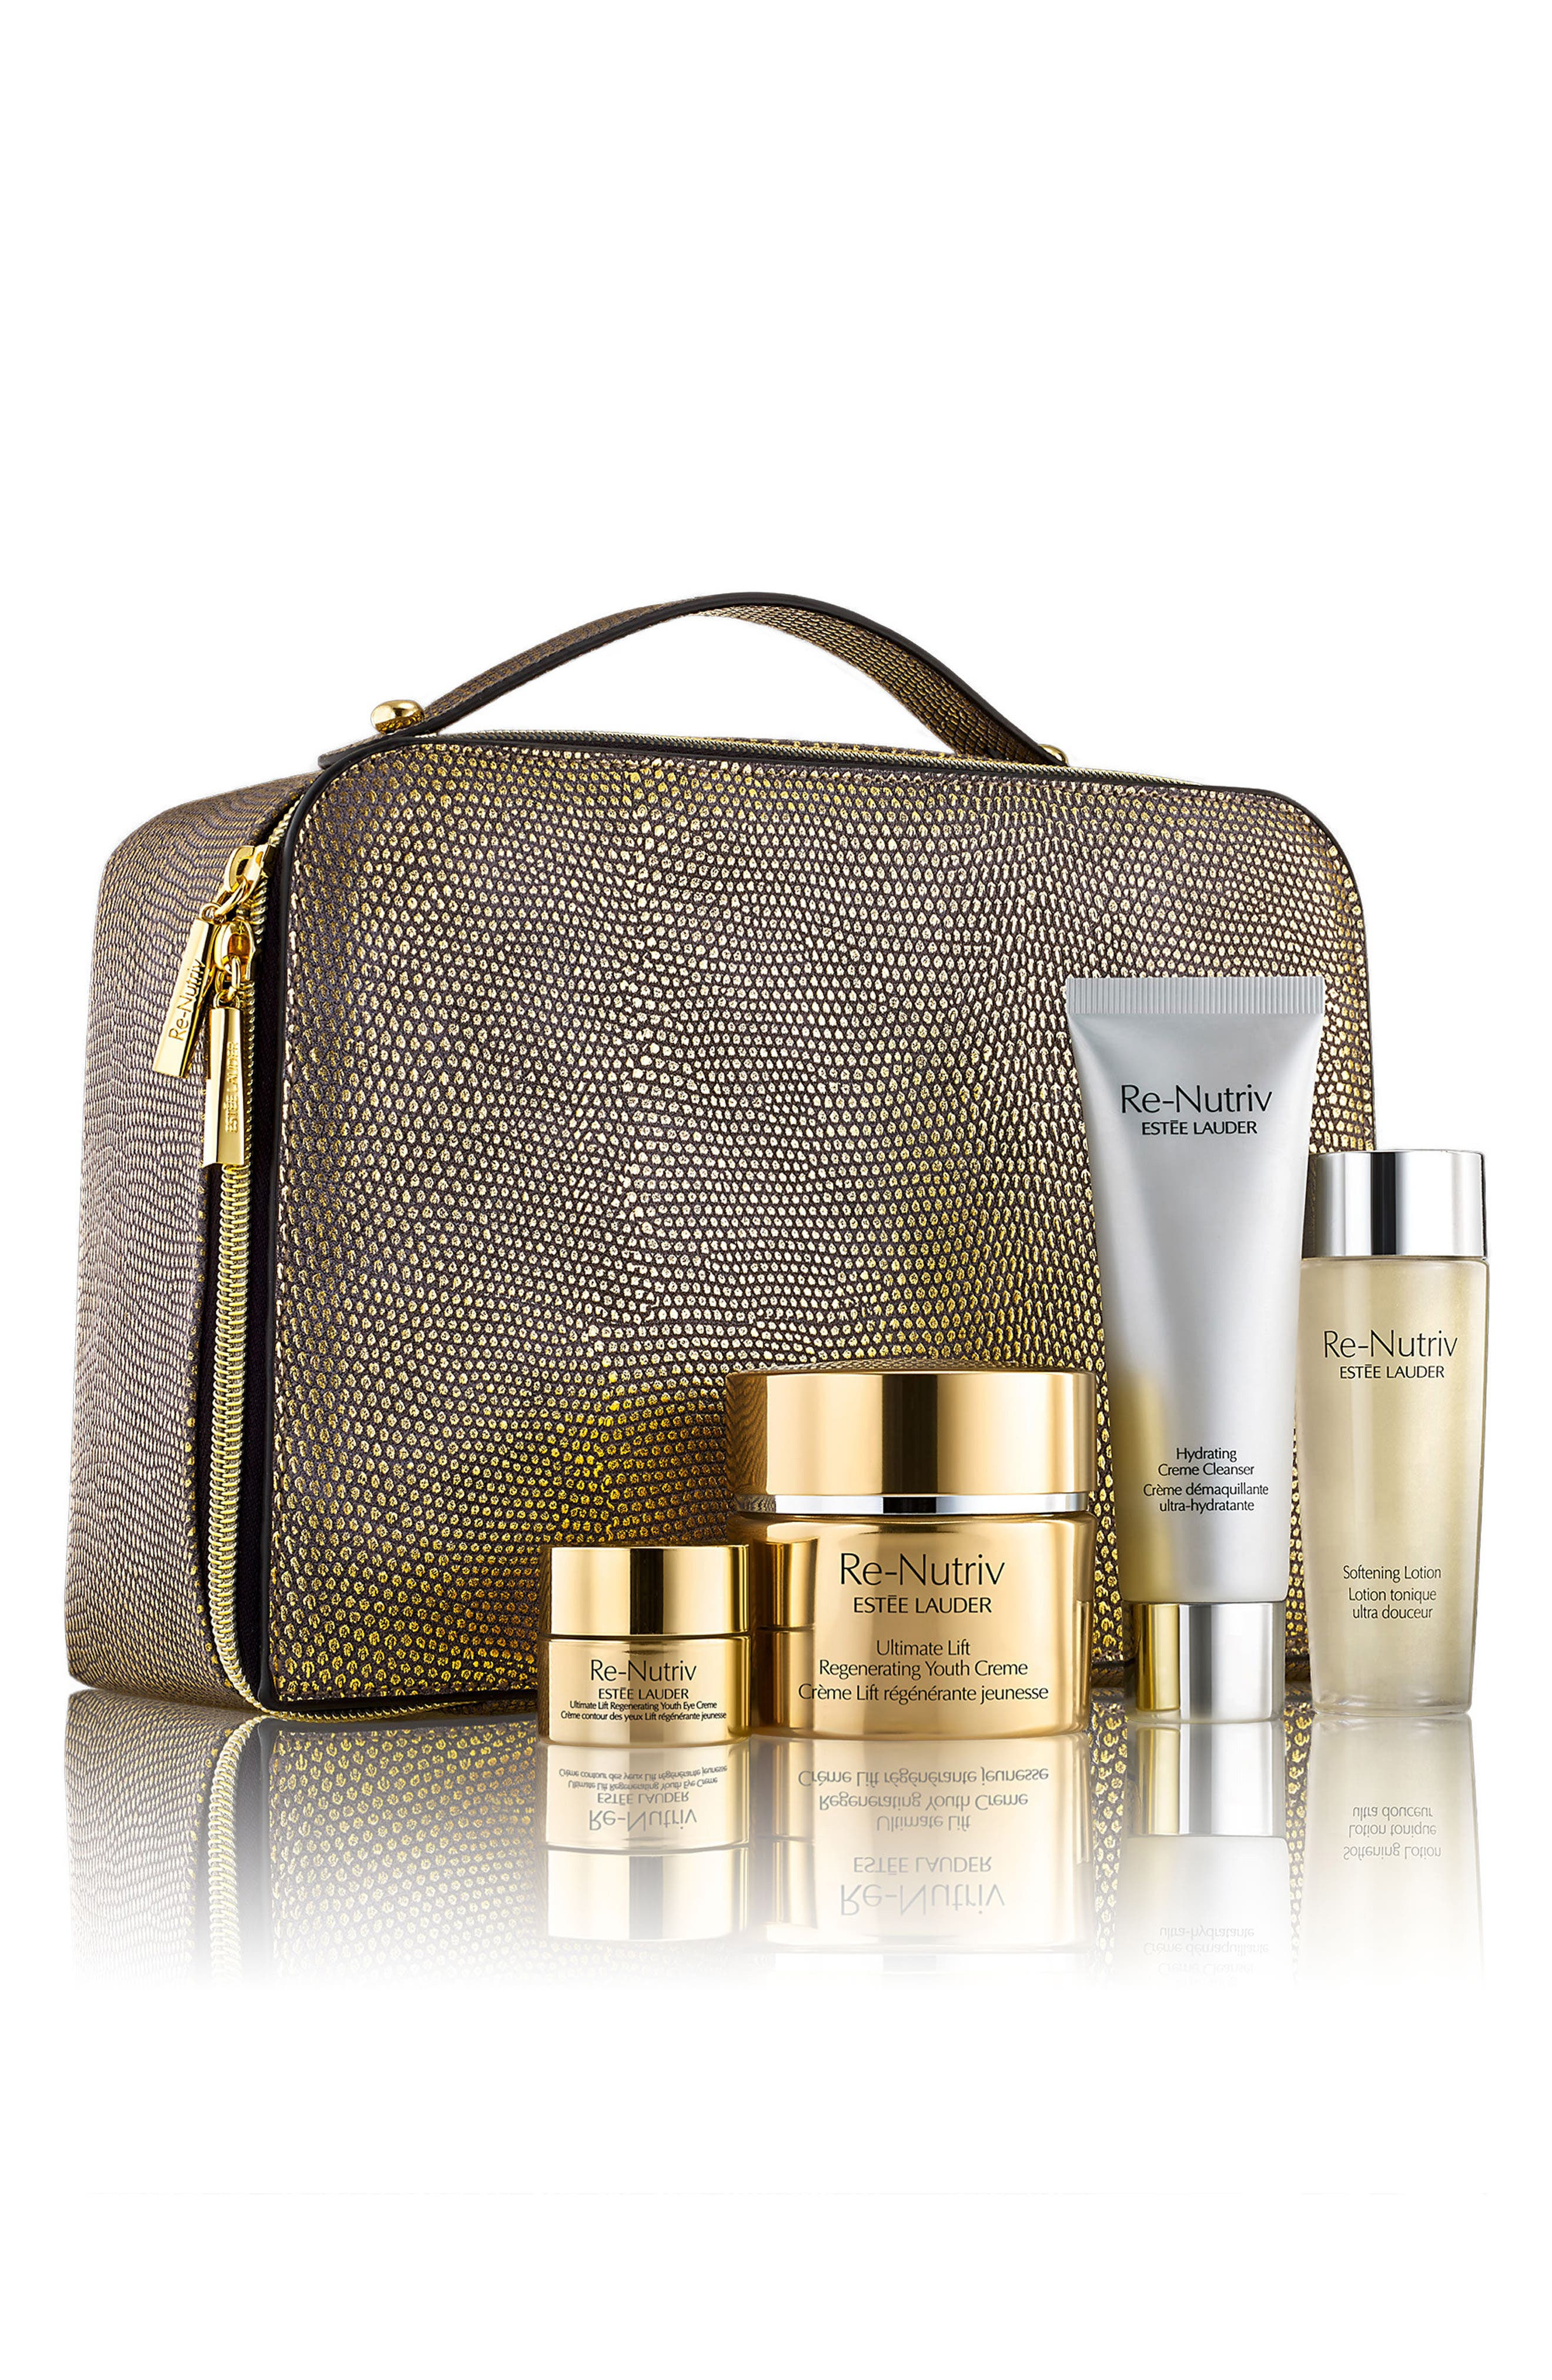 Estée Lauder The Secret of Infinite Beauty Ultimate Lift Regenerating Youth Collection for Face (Limited Edition) ($470 Value)